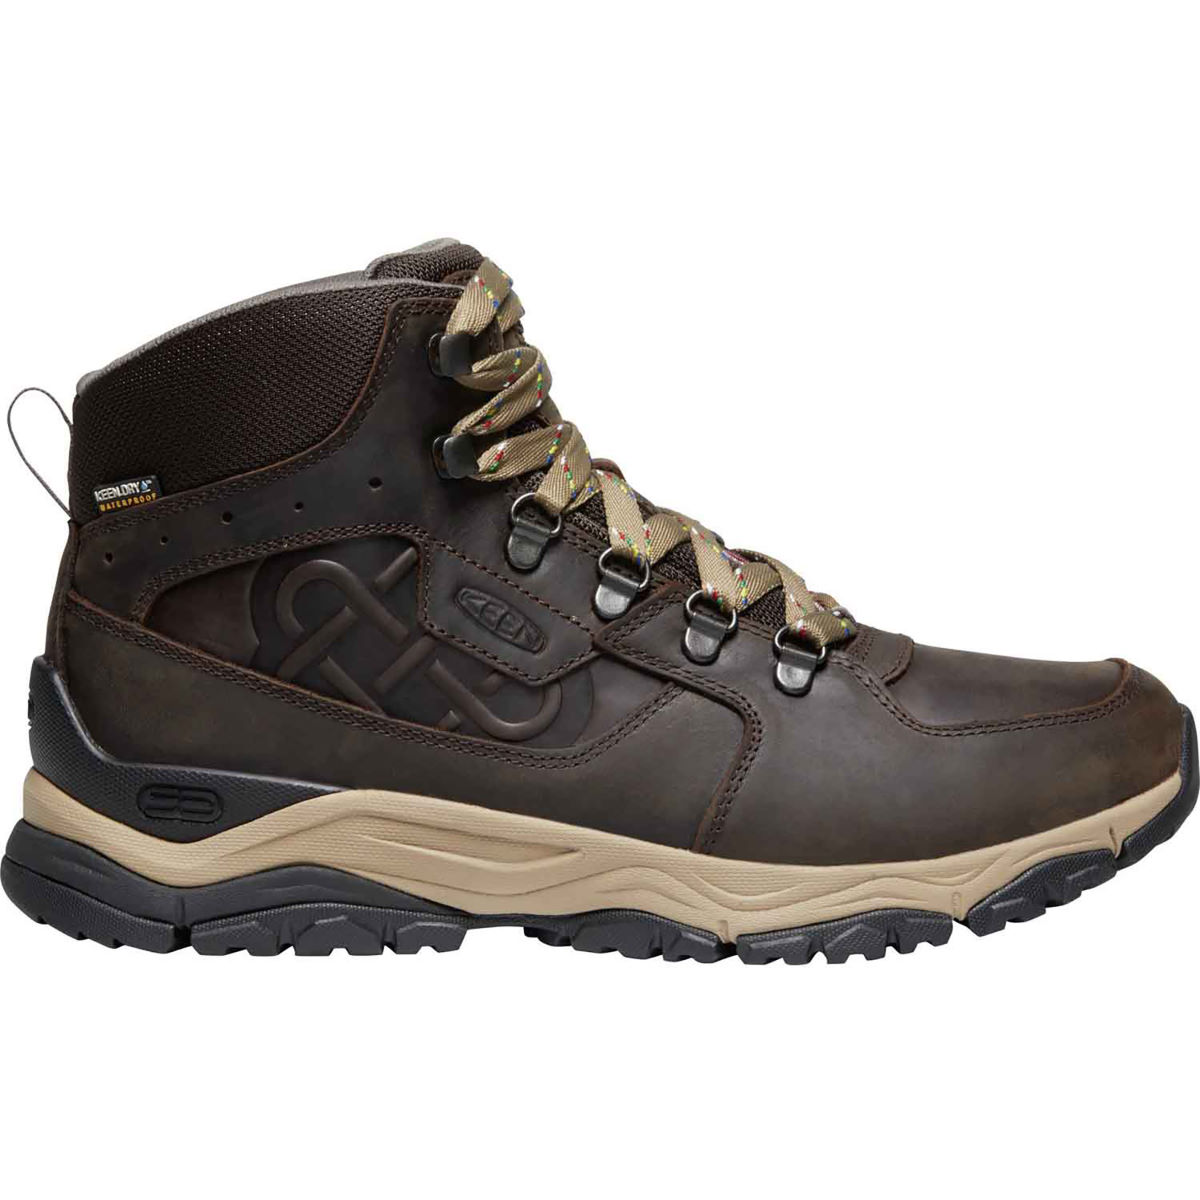 Keen Keen Innate Leather Mid Boots   Boots